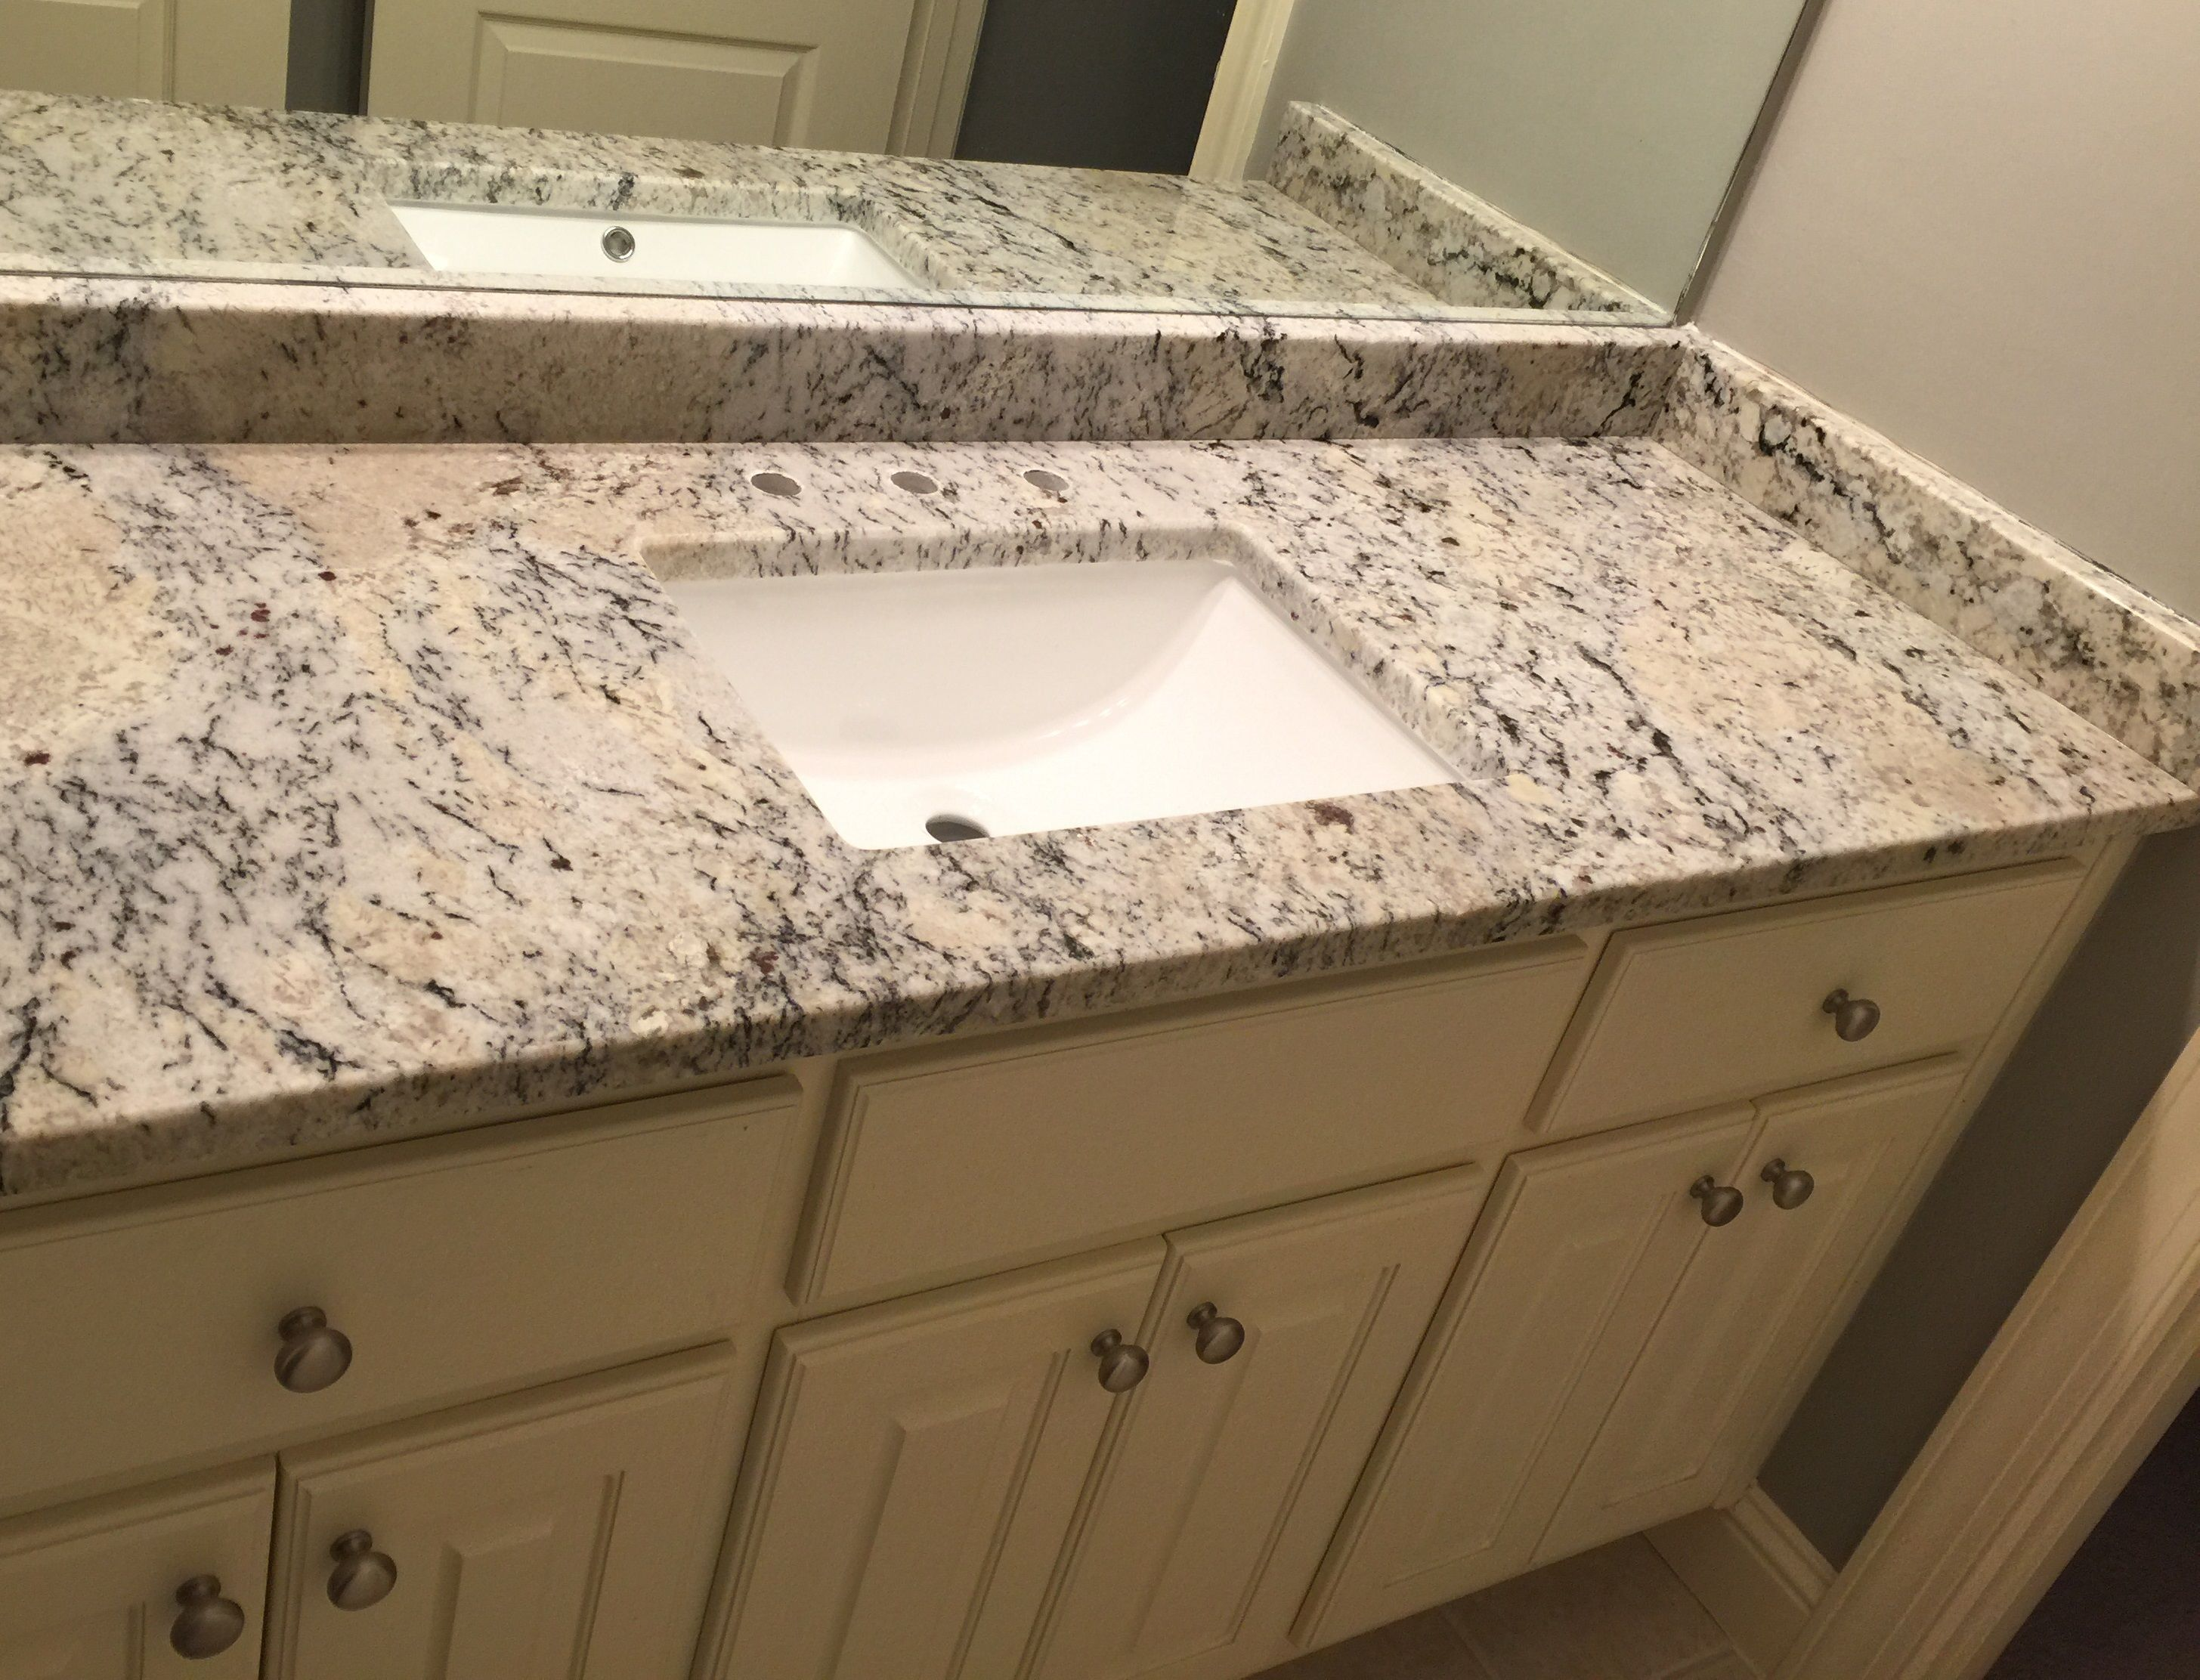 - Type Of Job: Vanity Top Material: Granite Color: New Venetian Gold